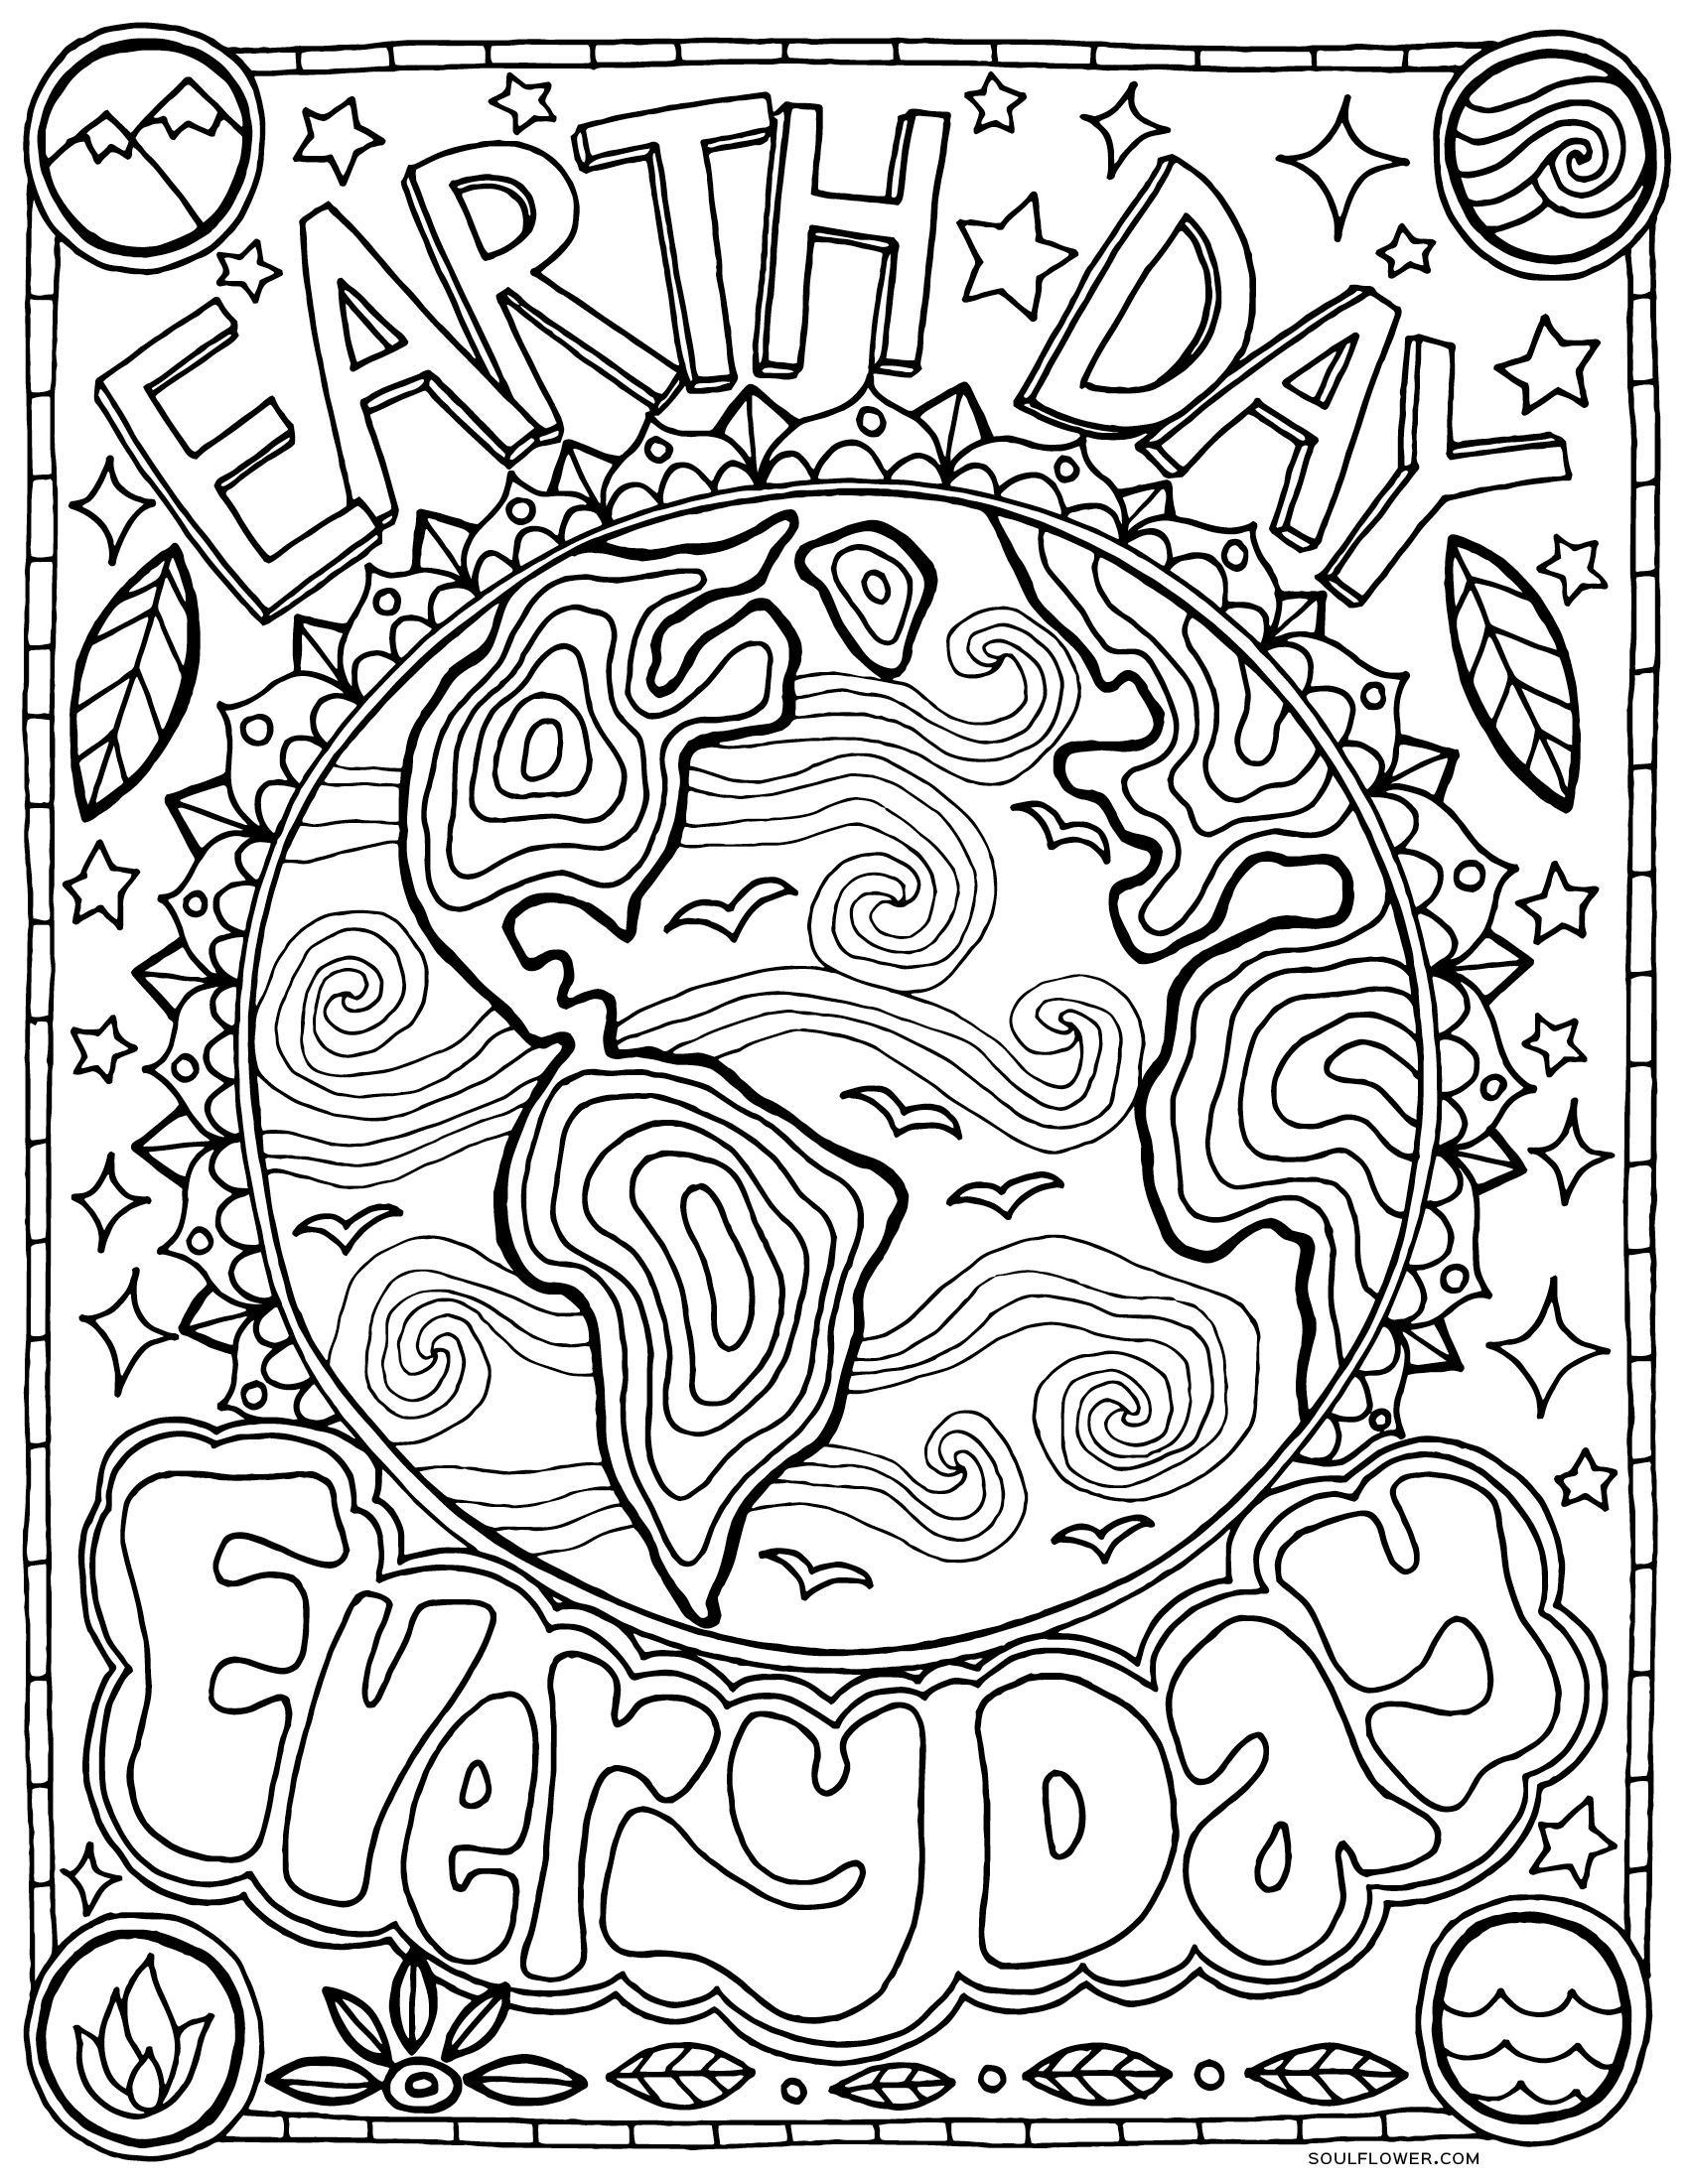 - Free Earth Day Coloring Page - Earth Day Every Day! (With Images